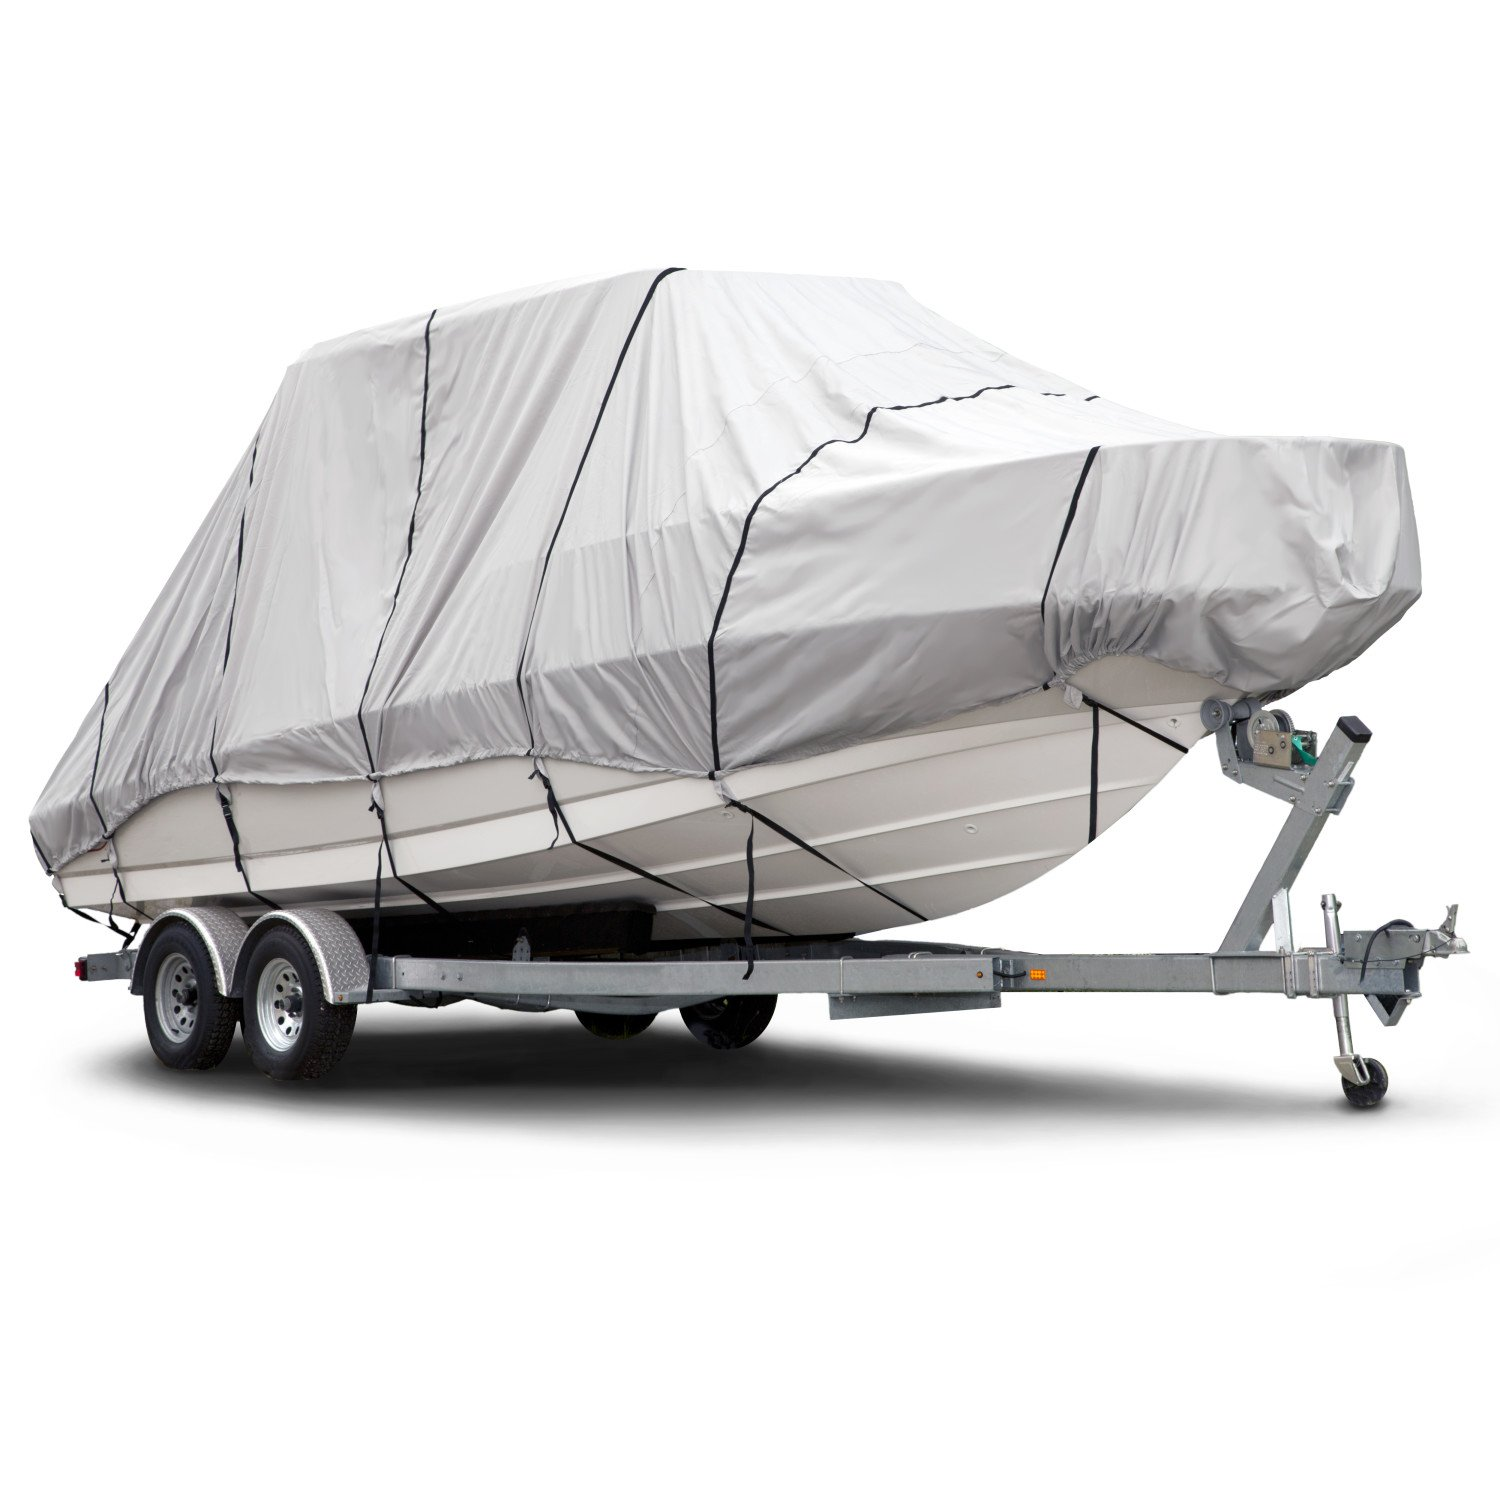 Budge 1200 Denier Boat Cover fits Hard Top / T-Top Boats B-1221-X5 (18' to 20' Long, Gray)